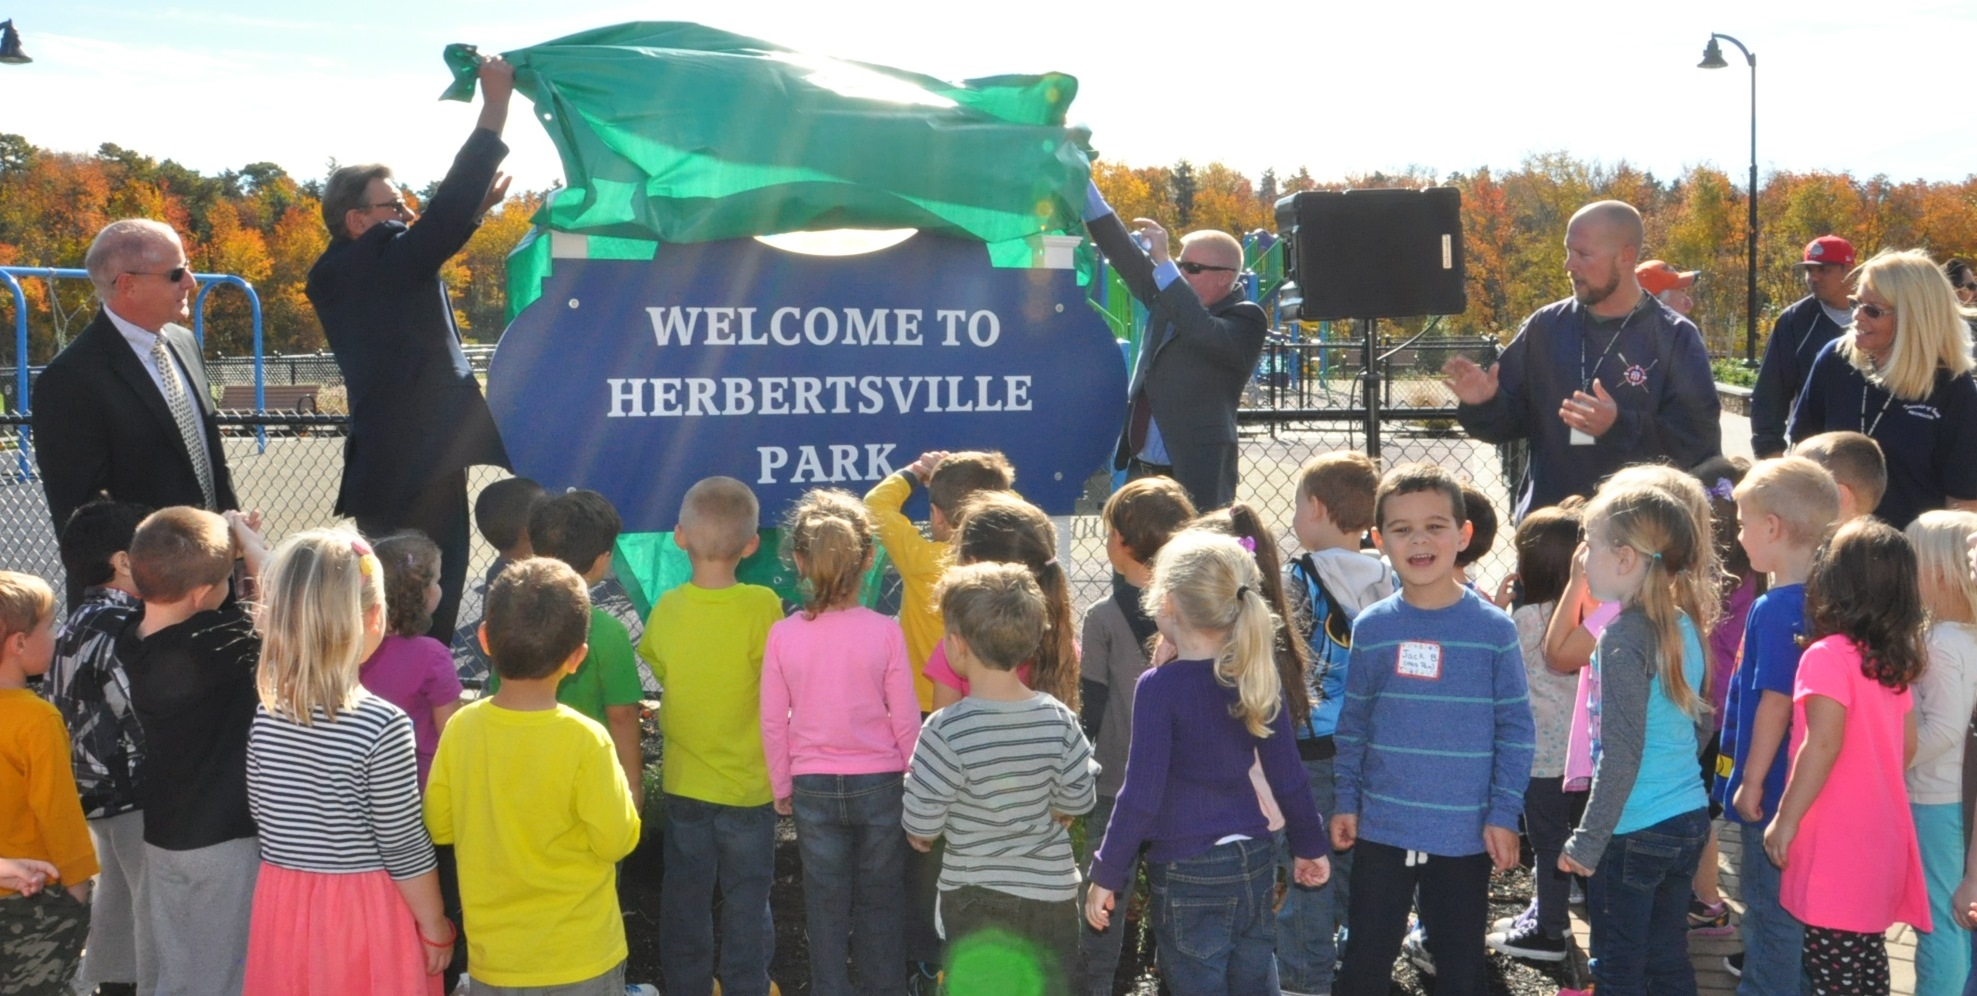 Herbertsville Park ribbon cutting. (Photo: Brick Twp.)